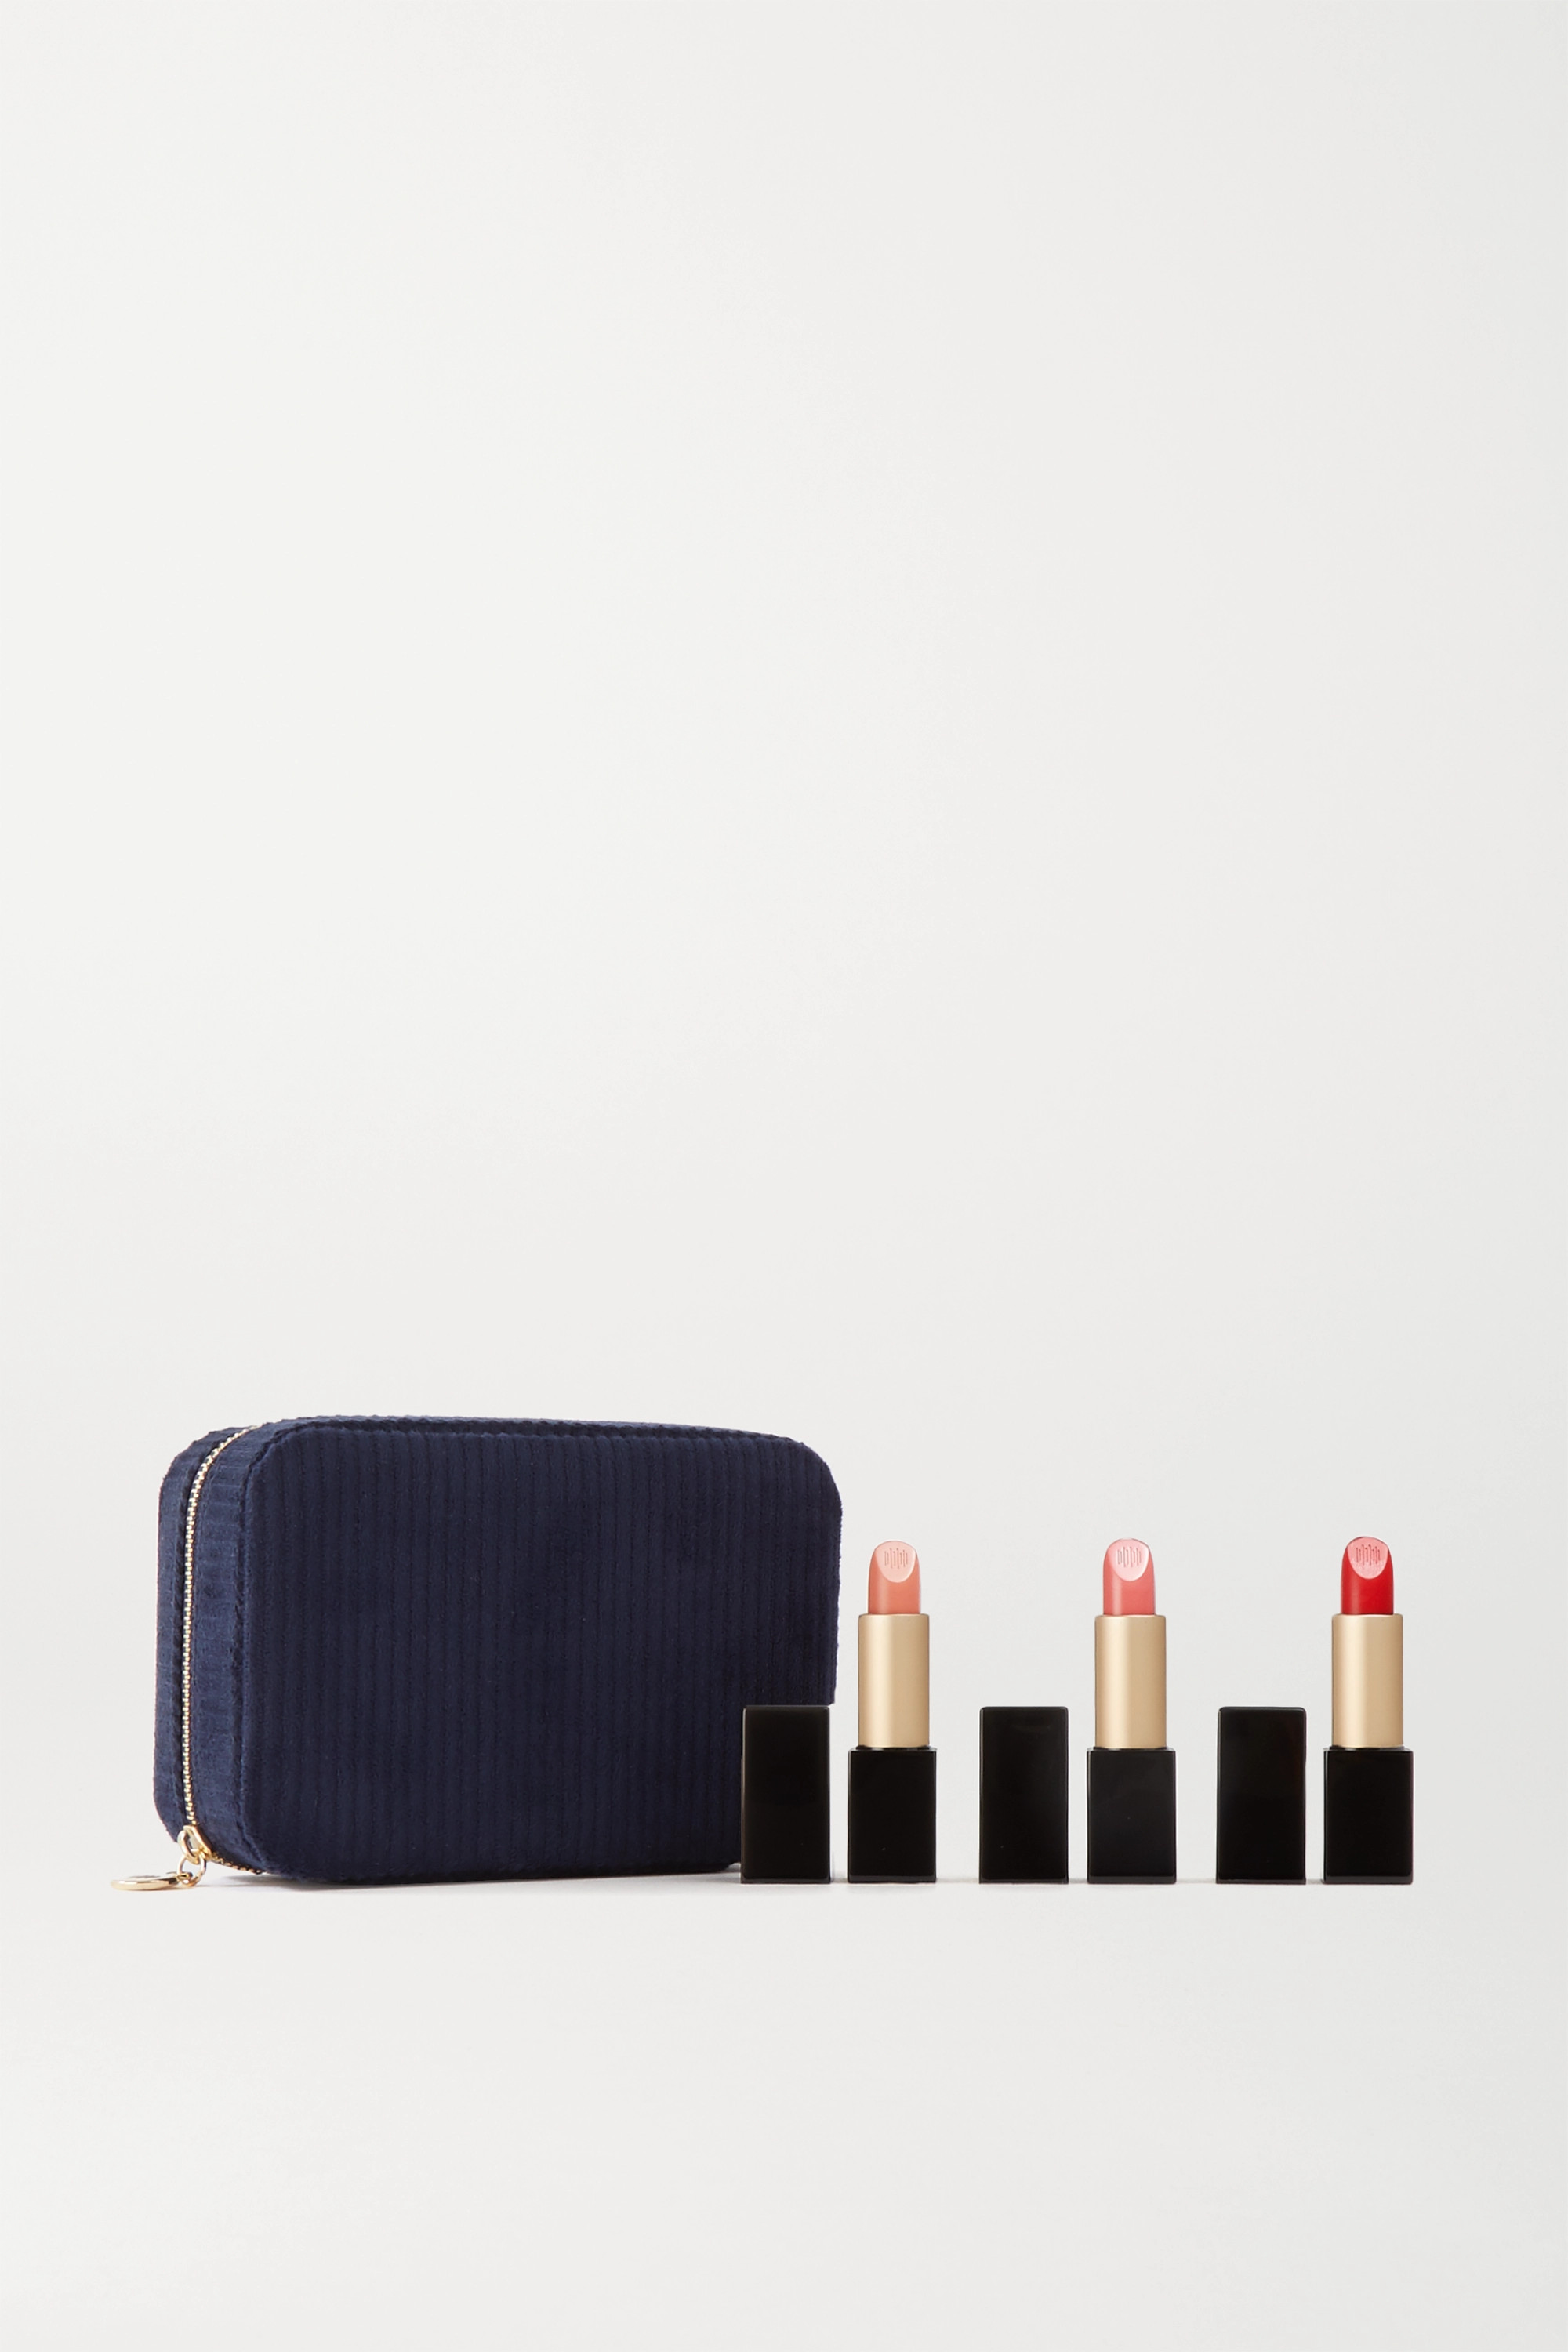 Code8 + Alexa Chung  All Day Soirée Lipstick Trio Set